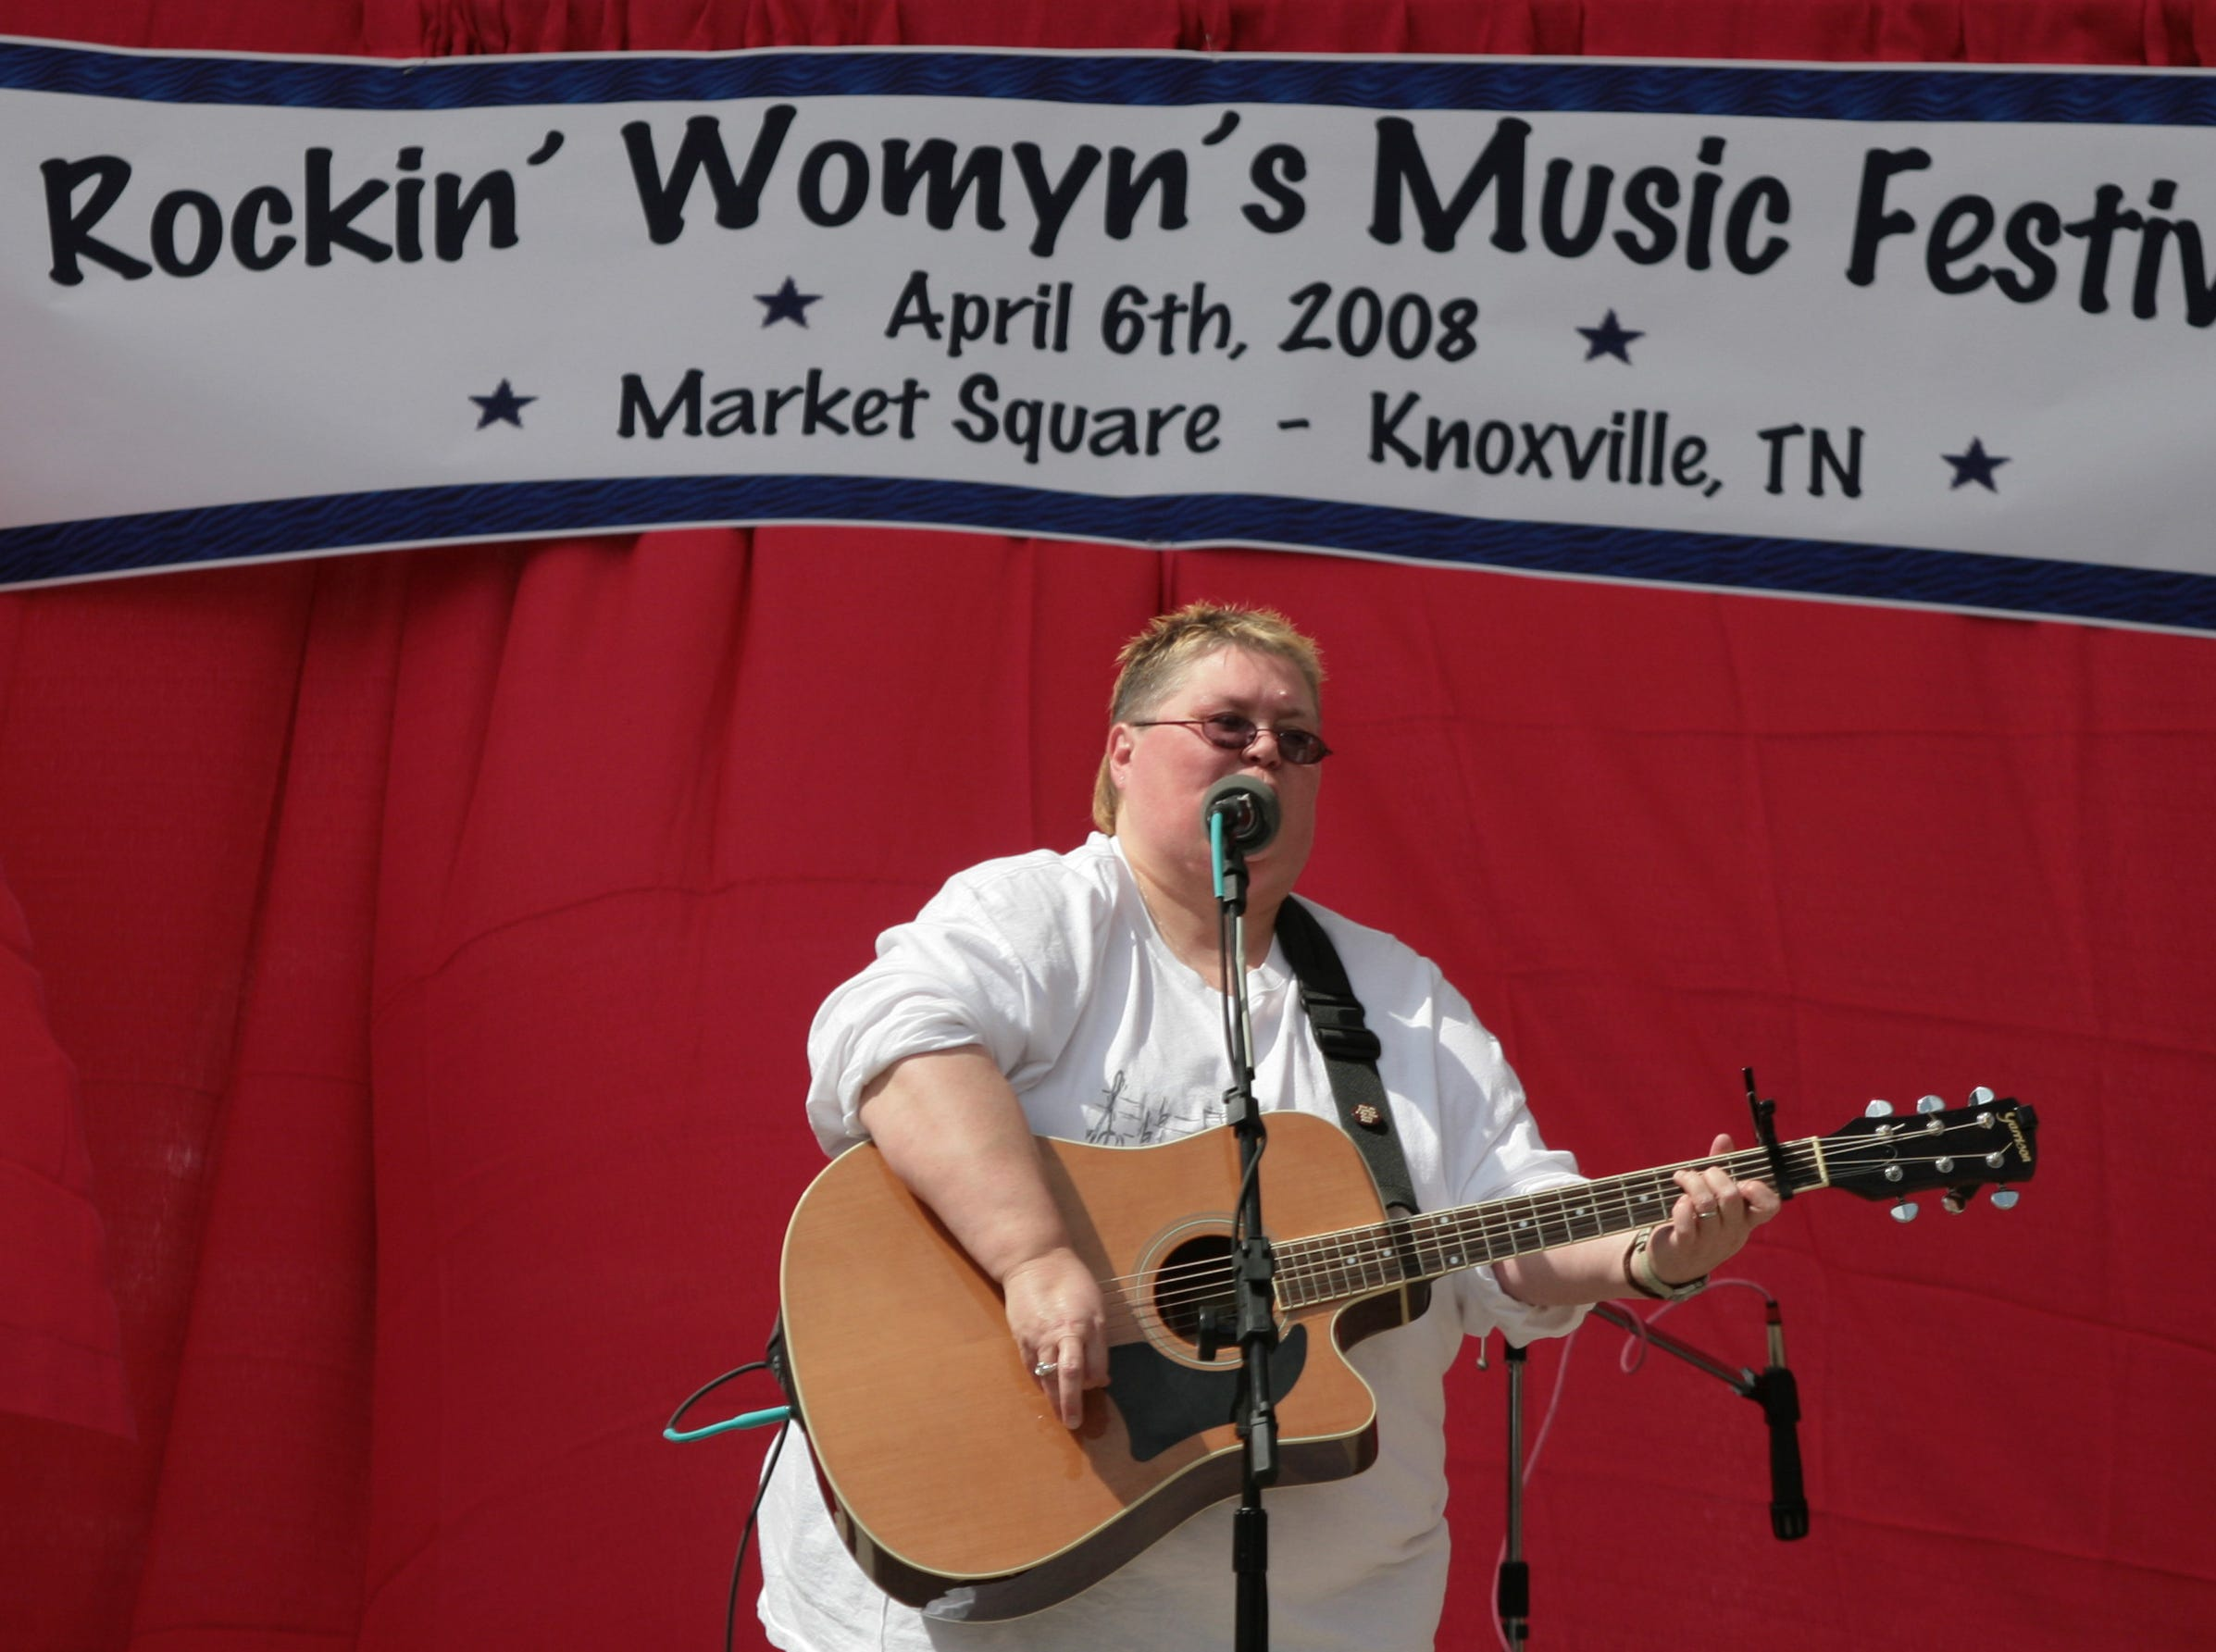 Karen Reynolds performs a song during the 2nd annual Rockin' Womyn's Music Festival on Sunday on Market Square. More than ten acts performed at the festival put on by the Lambda Student Union with proceeds going to support the Family Justice Center.